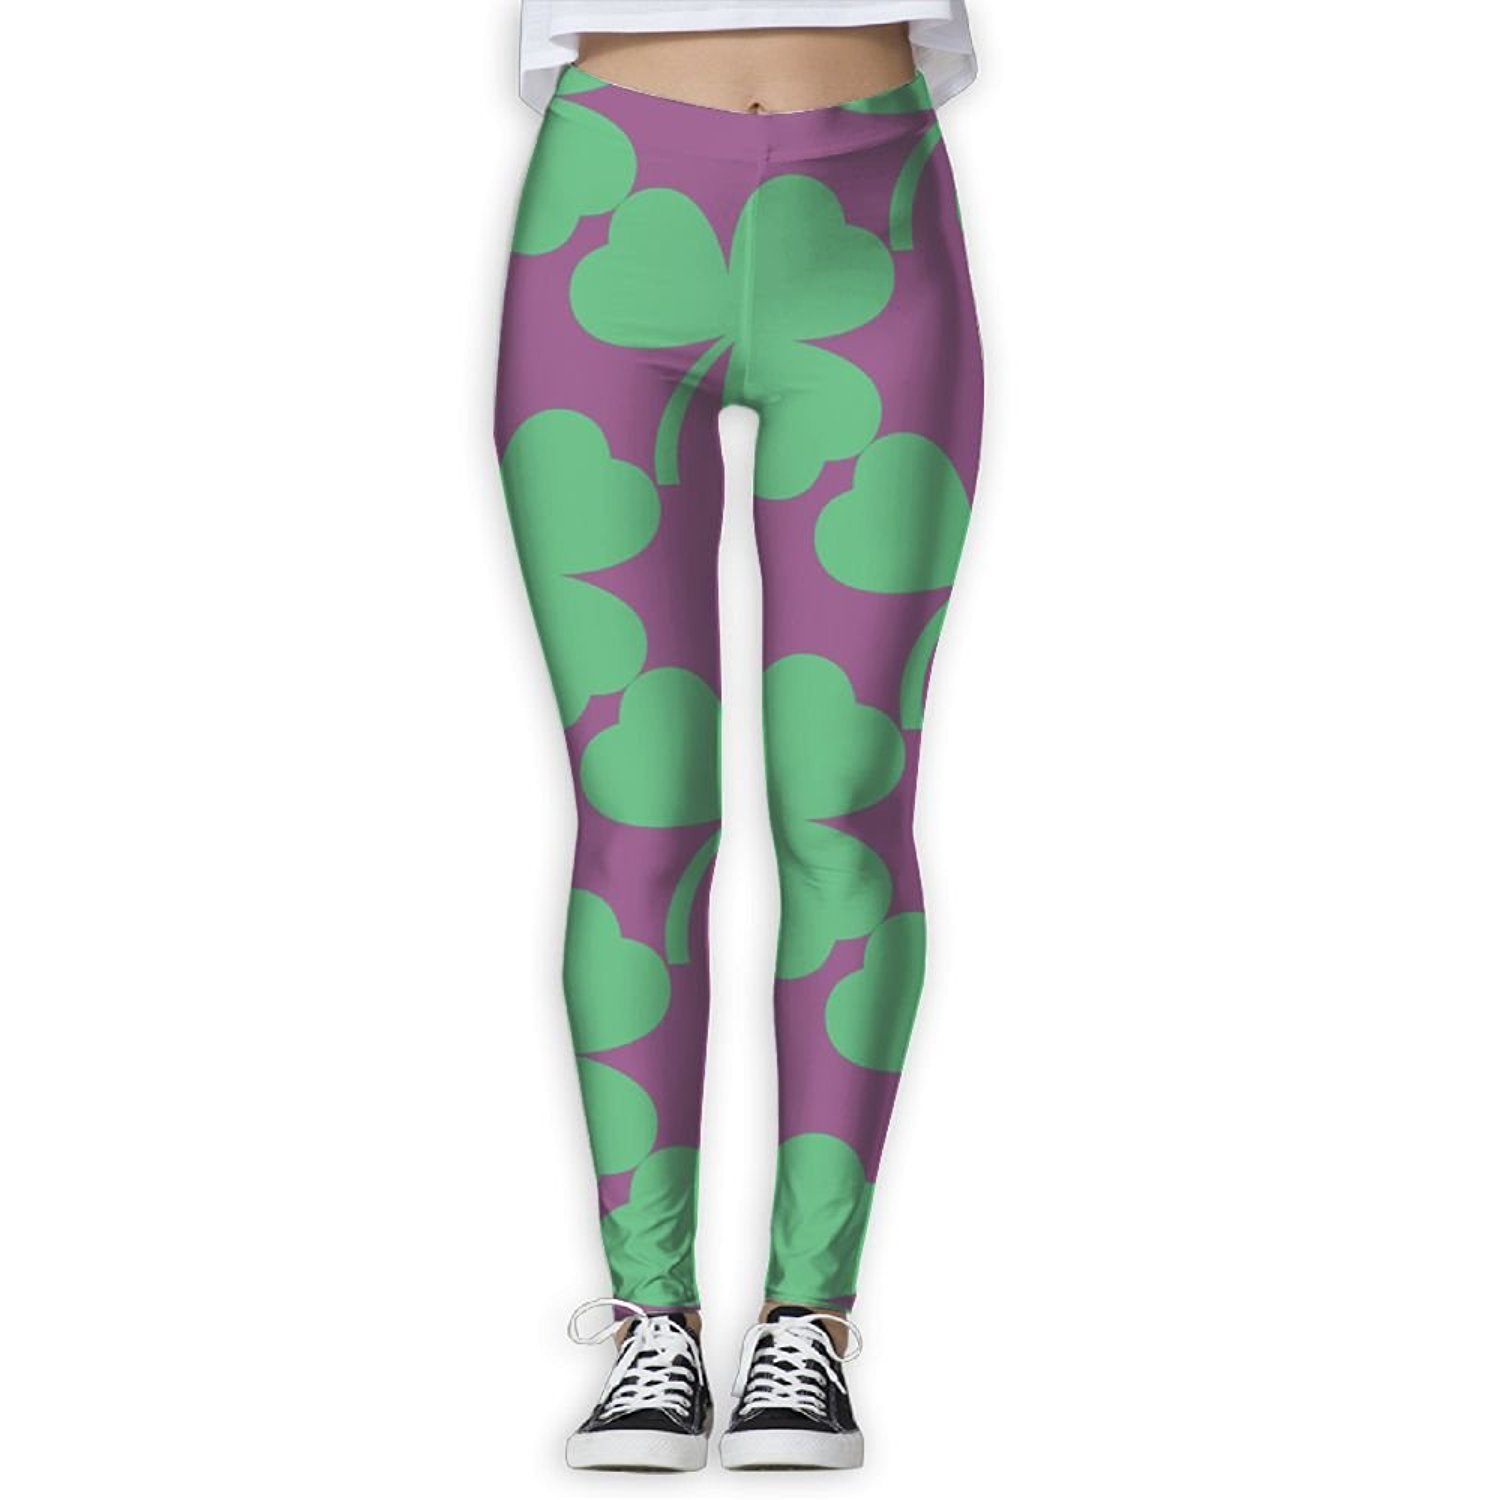 KLAFB Casual Yoga Pants For Womens Dilly Dilly Workout Casual Sports Compression Pants Leggings